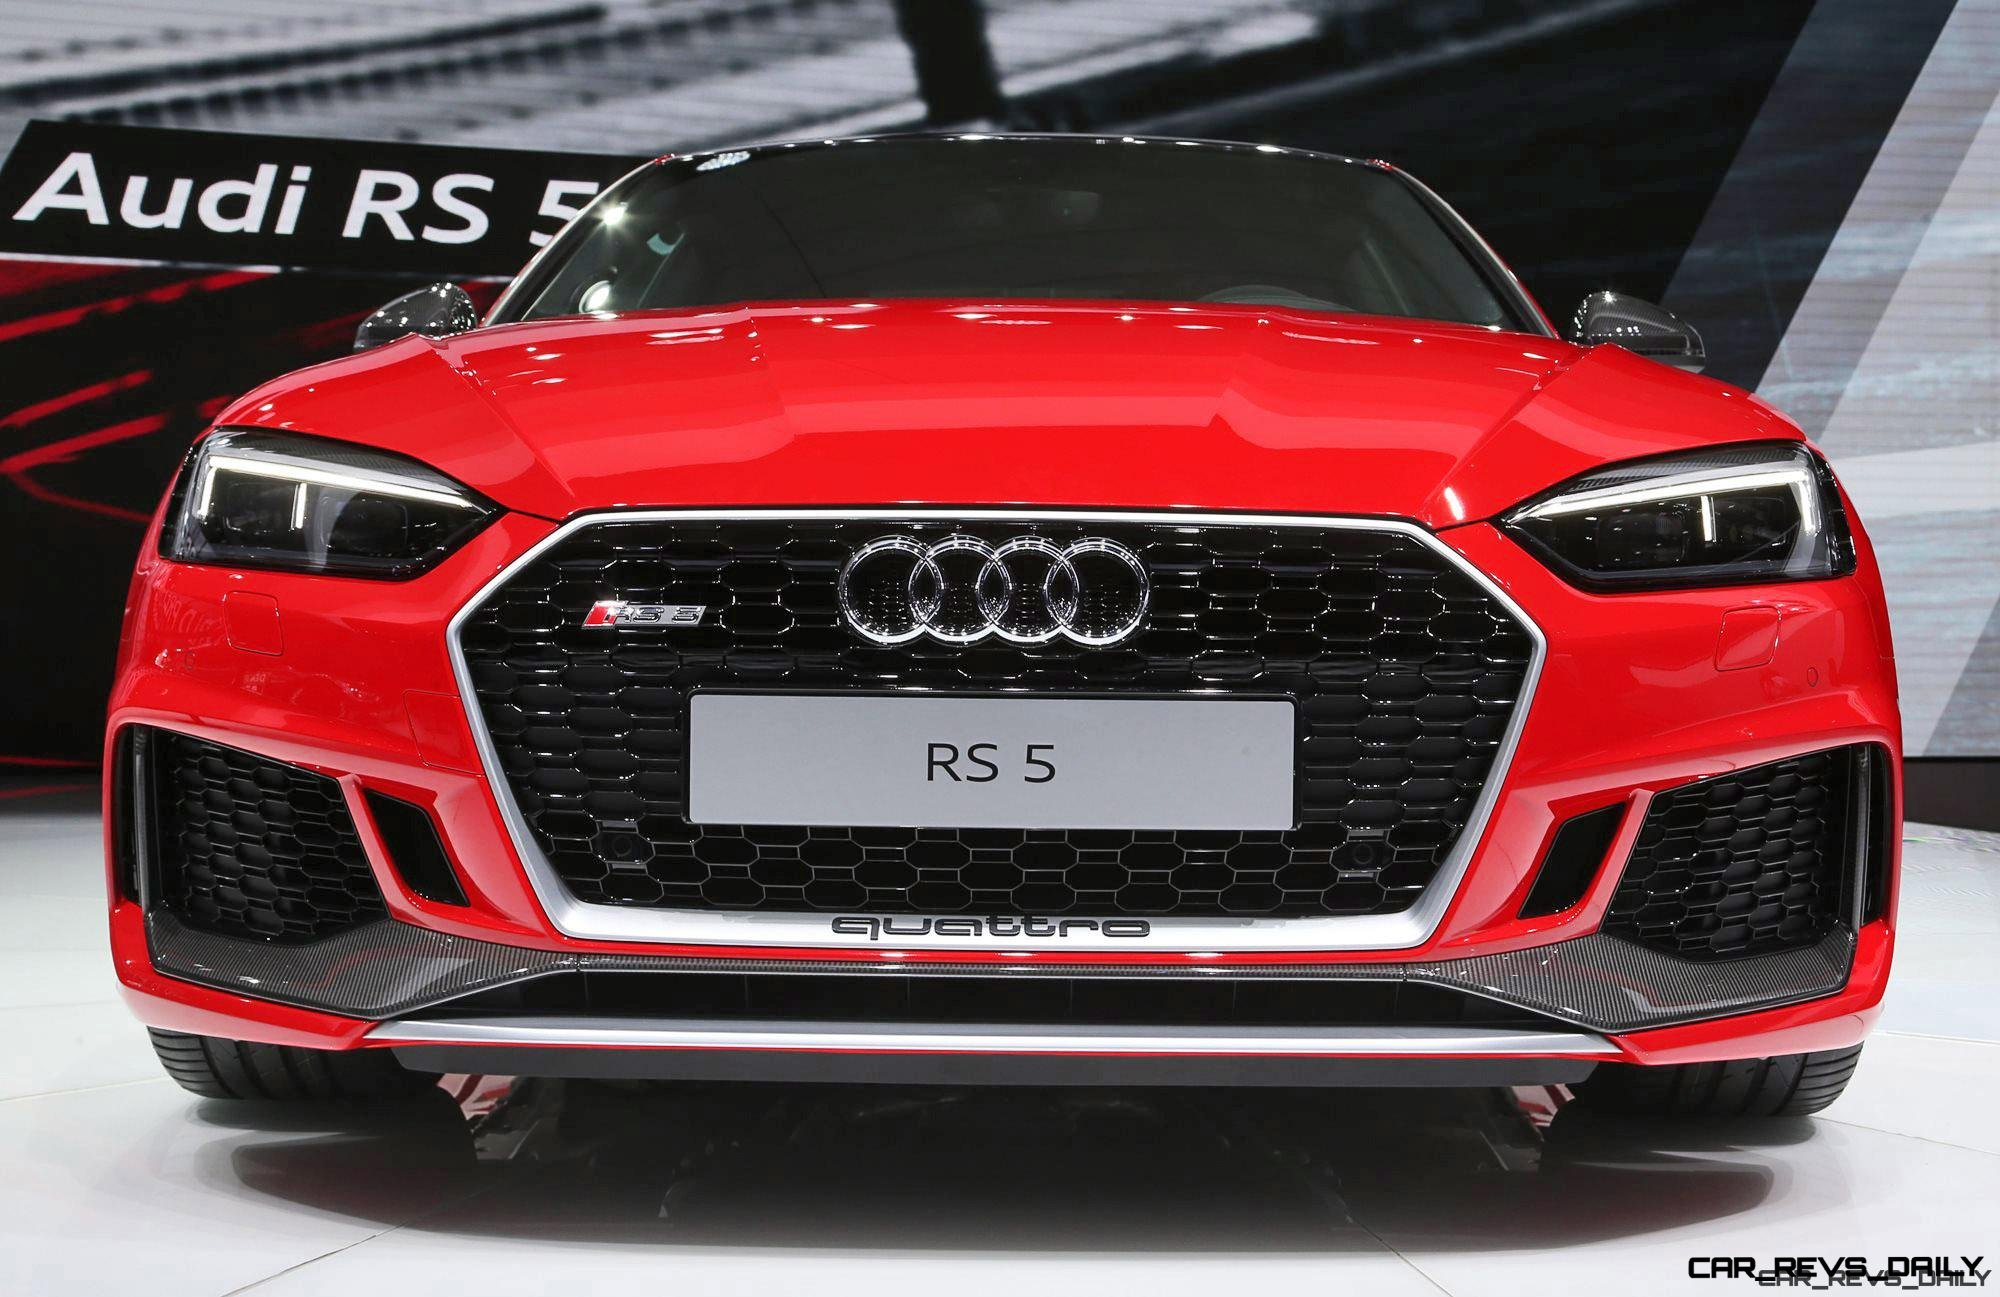 S HP Audi RS Scores Snarling New VTT Tech And Style - Audi rs5 2018